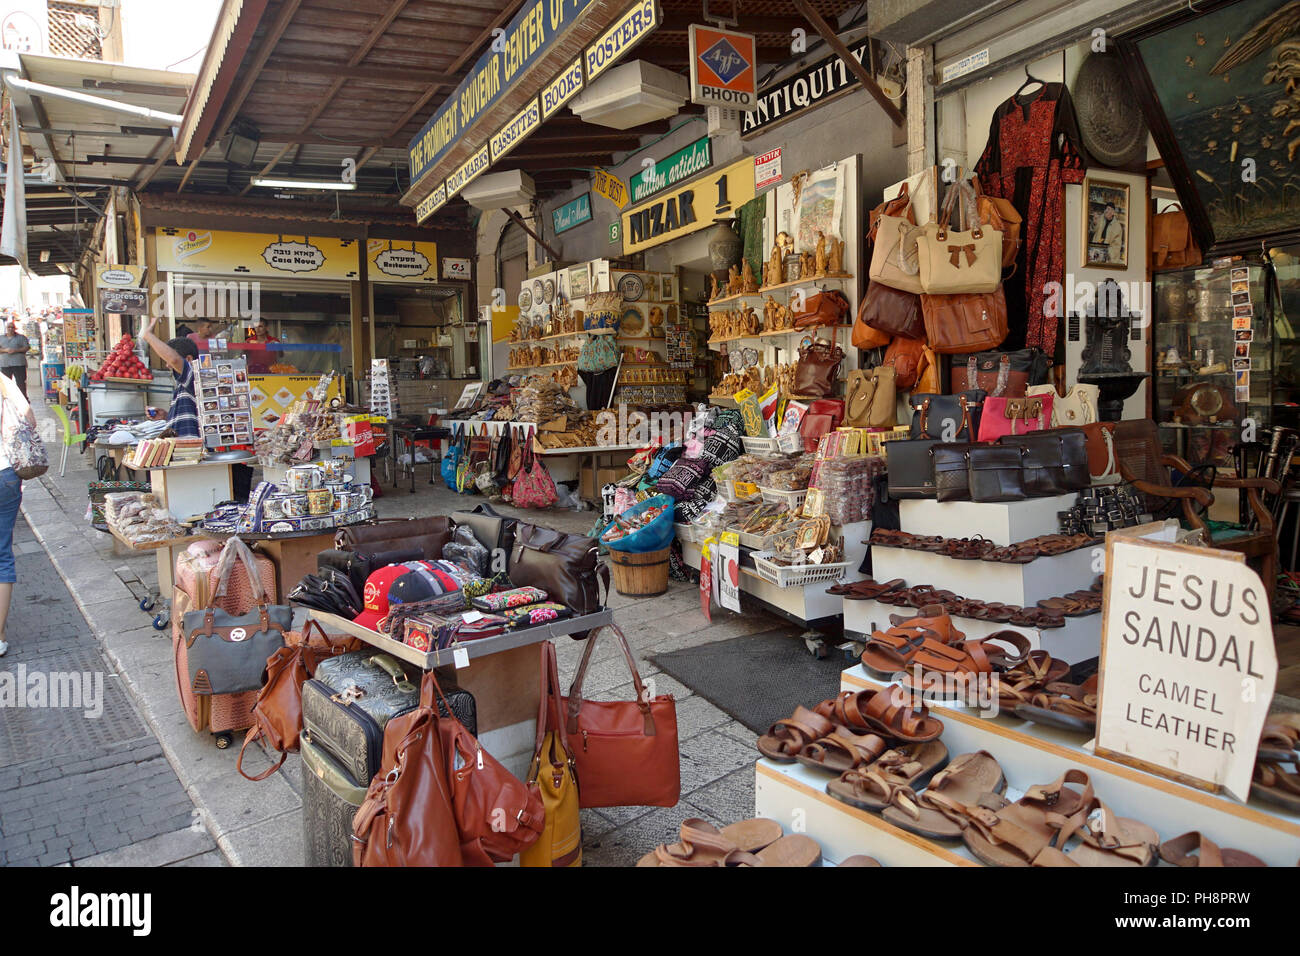 Tourist souvenirs for sale at the market in Nazareth, Israel - Stock Image